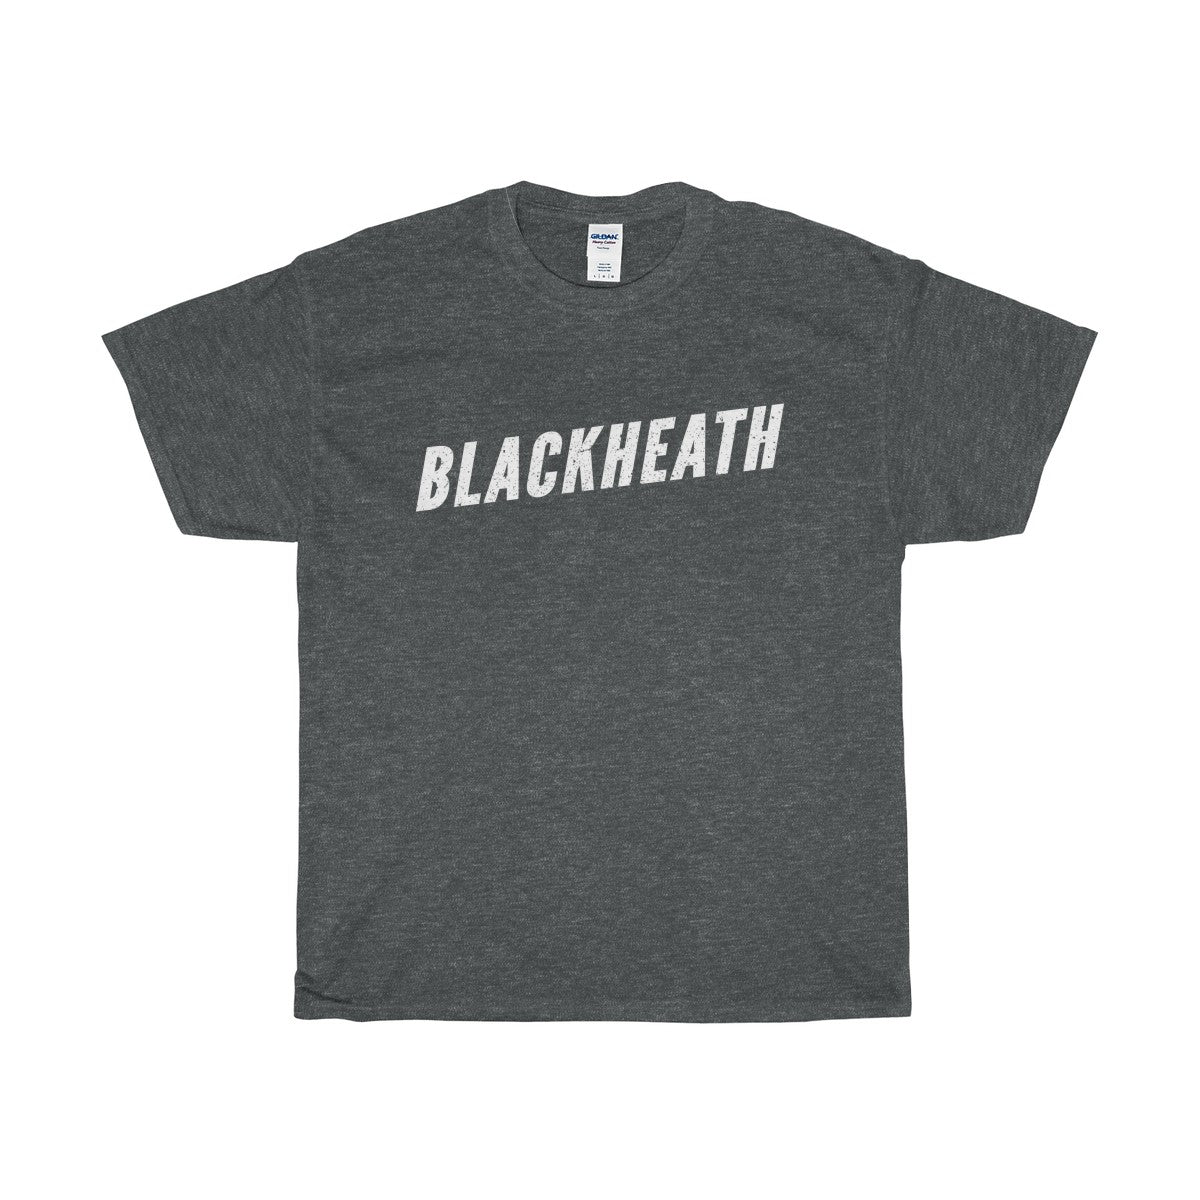 Blackheath T-Shirt